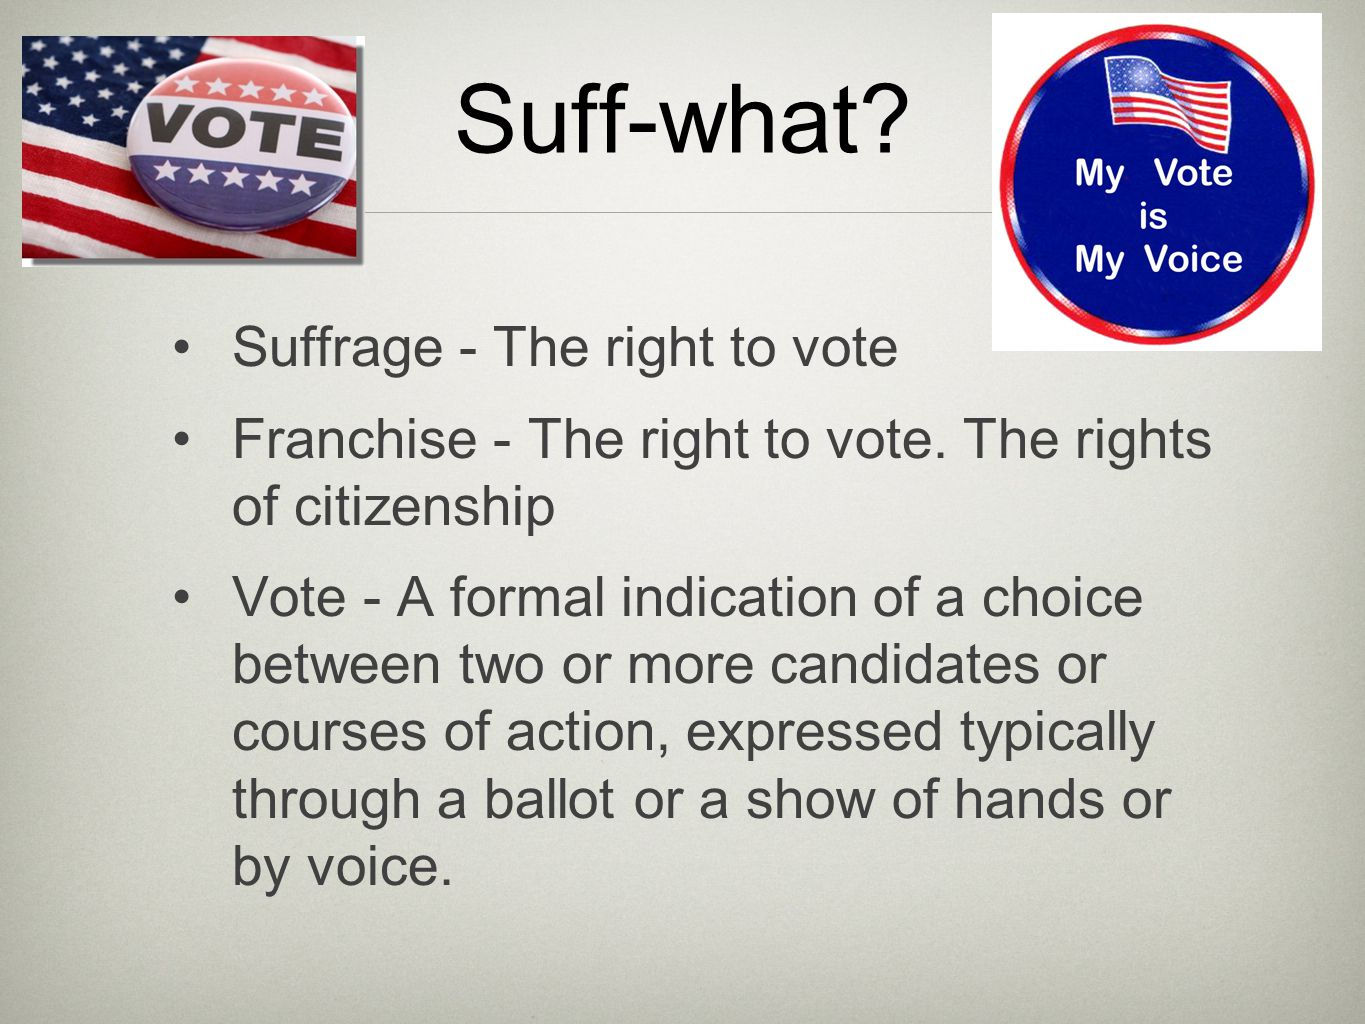 Suff-what Suffrage - The right to vote